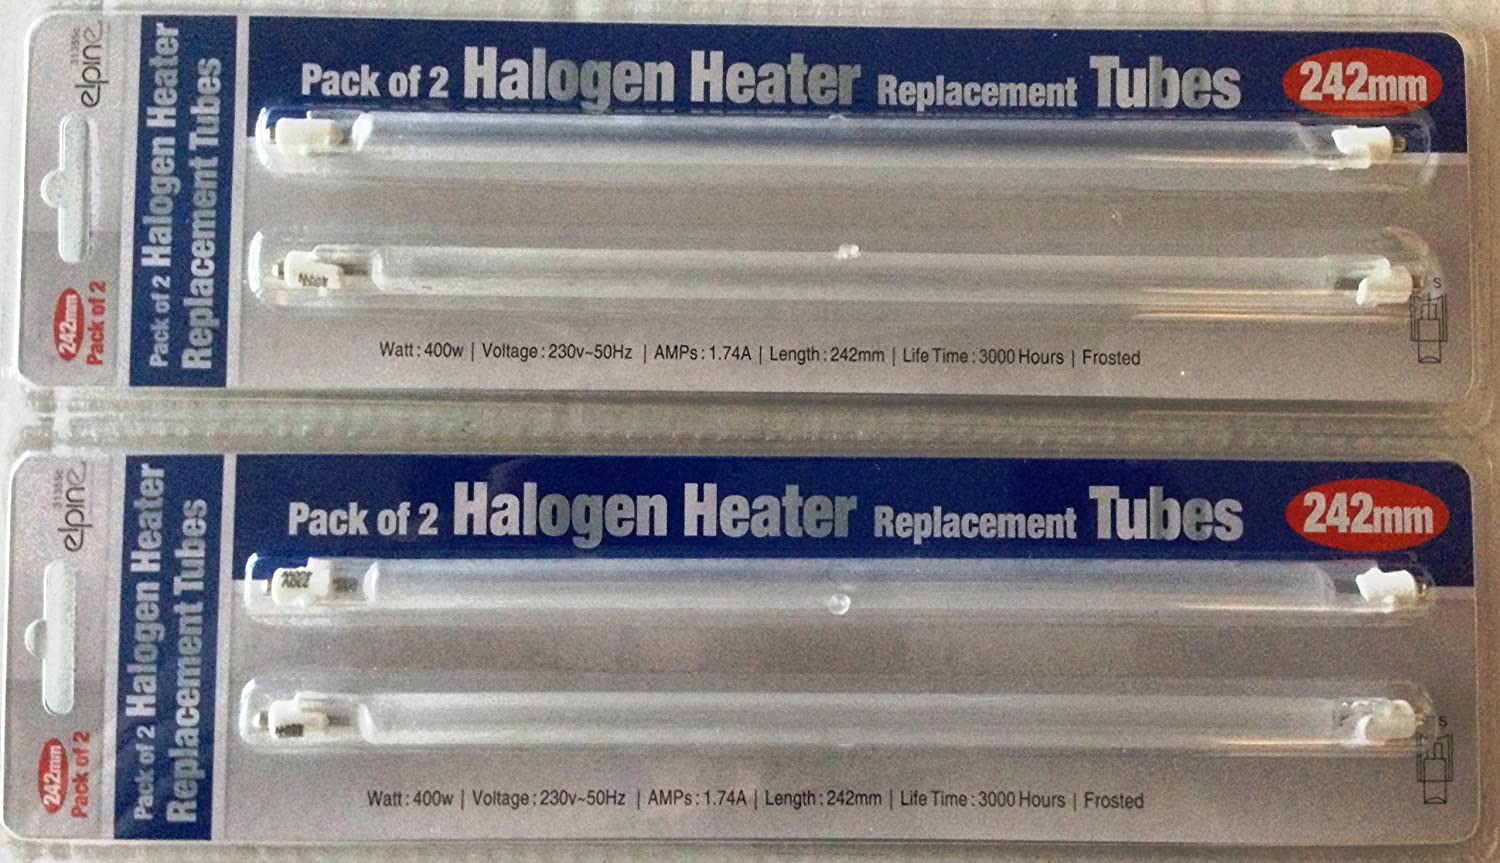 Halogen Heater Replacement Tubes - 400 watts - 242mm - 4 tubes